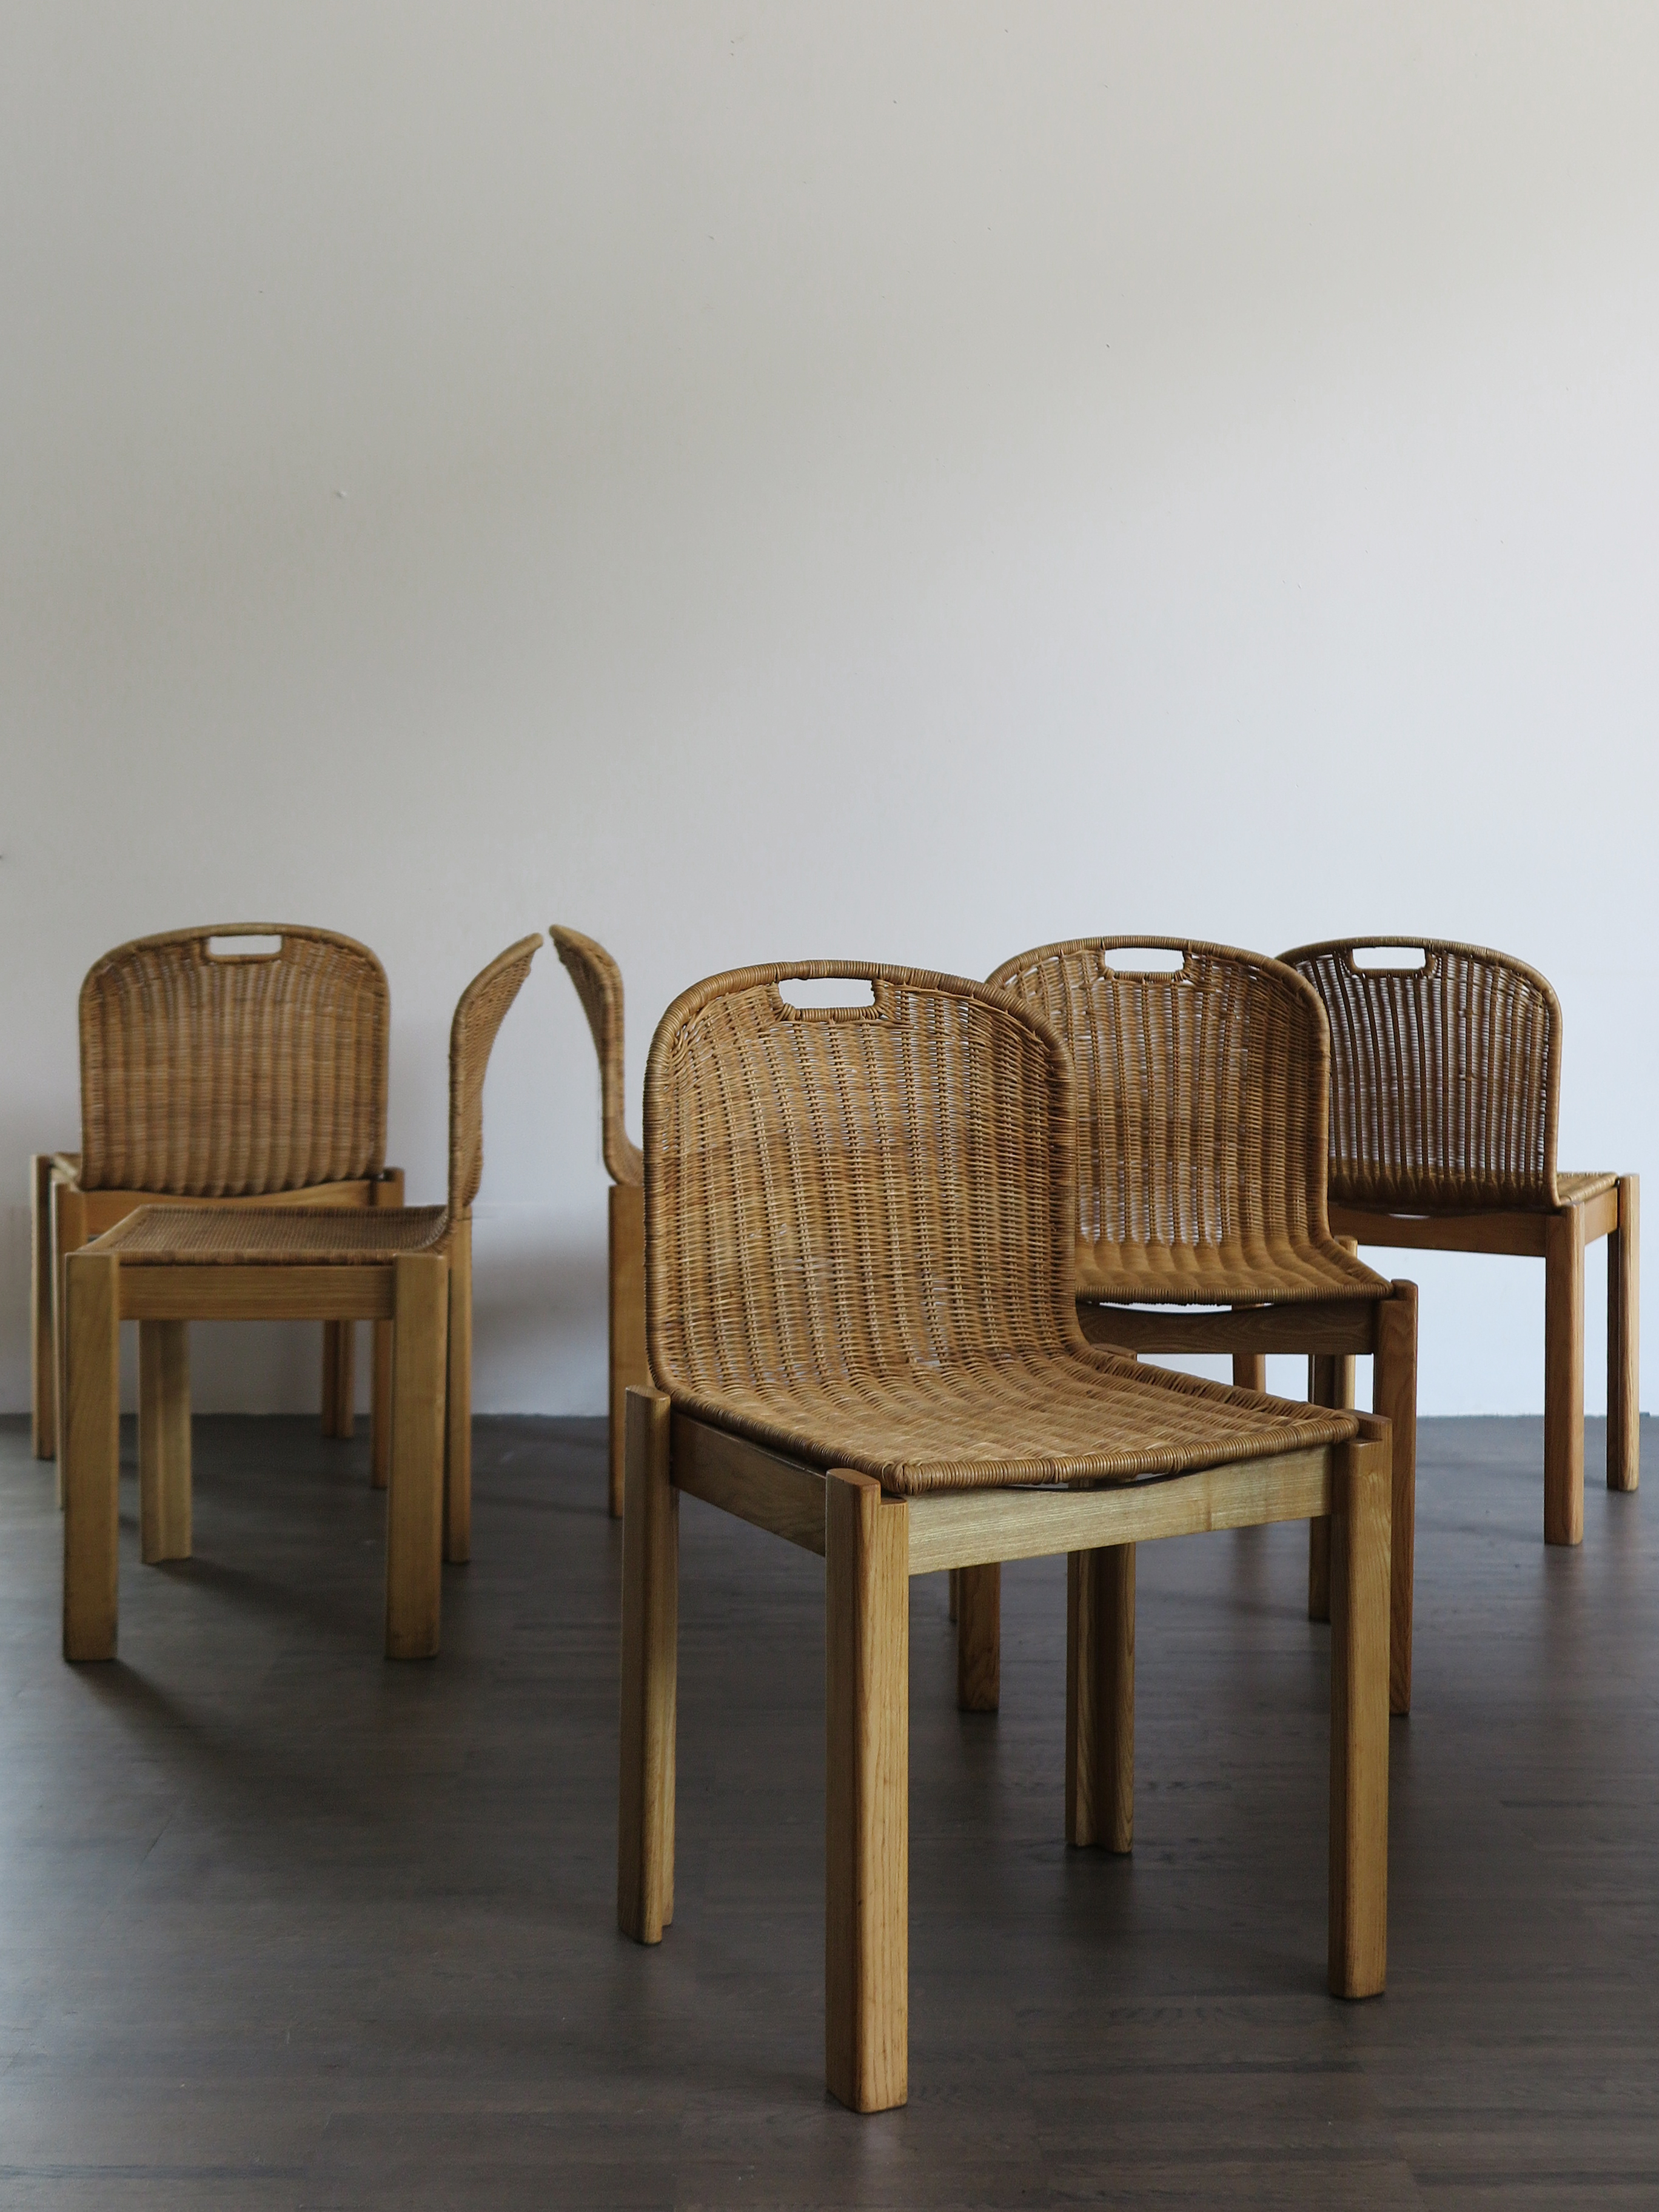 Italian Wicker Dining Chairs Set, 1960s